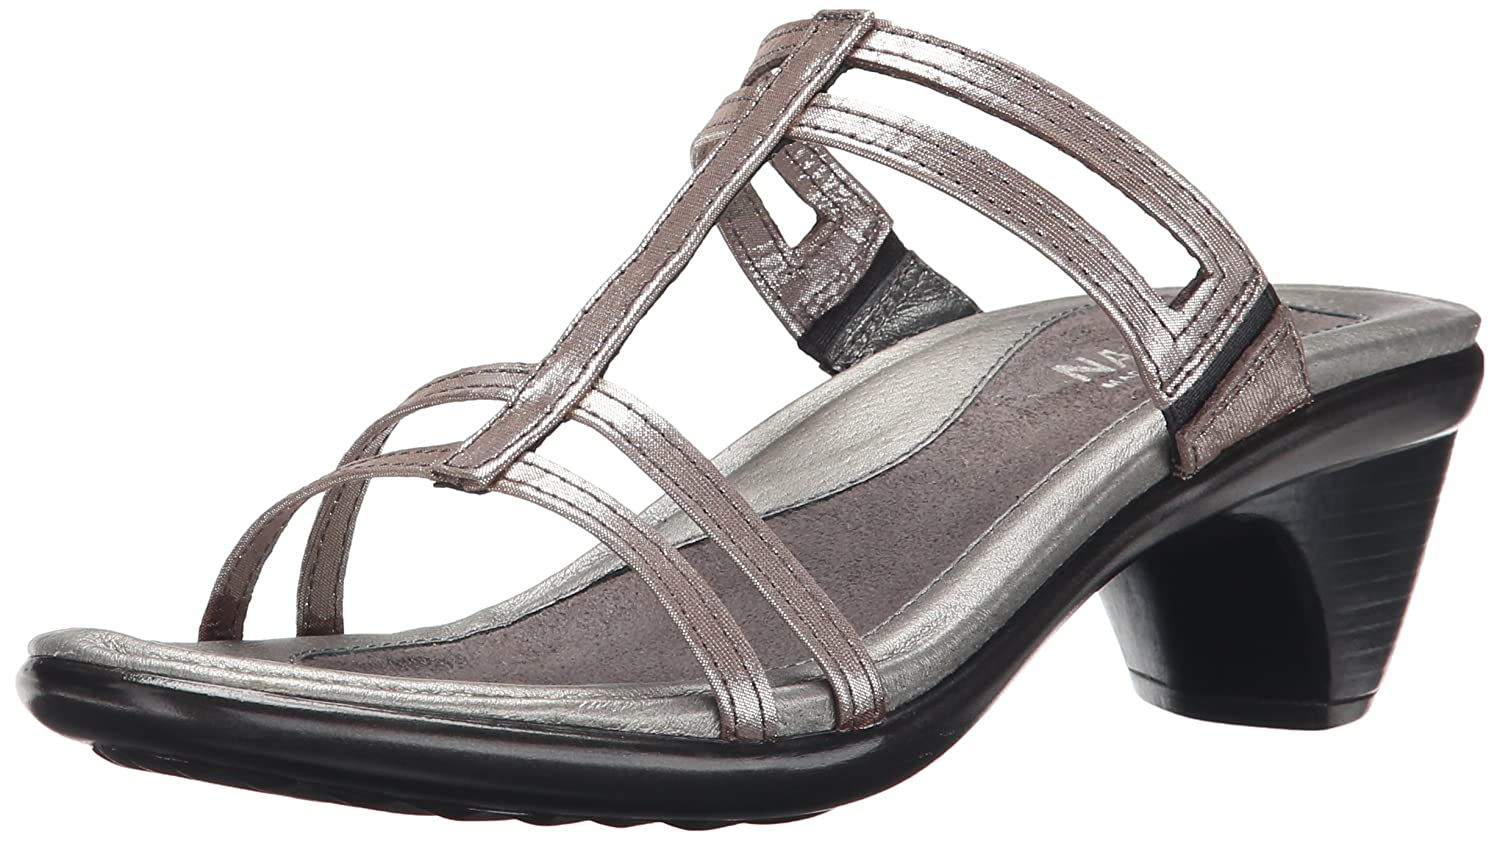 Naot Women's Loop Wedge Sandal, Silver Threads Leather, 41 EU/9.5-10 M US B004Q5T506 Parent